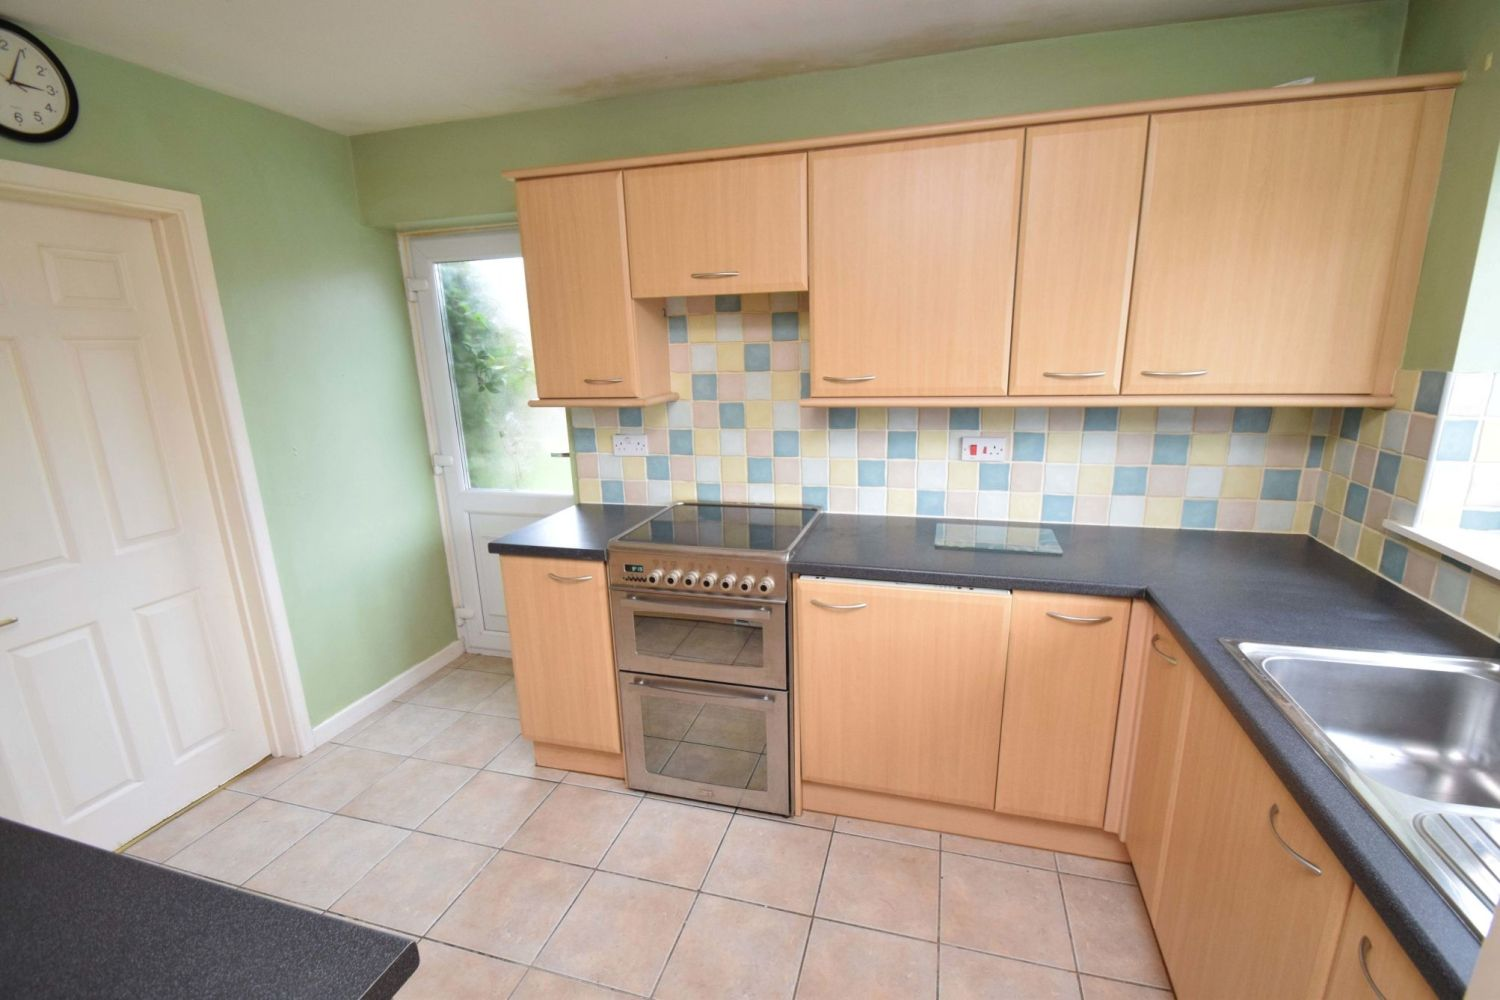 3 bed detached for sale in Avon Close, Stoke Heath, Bromsgrove, B60  - Property Image 5